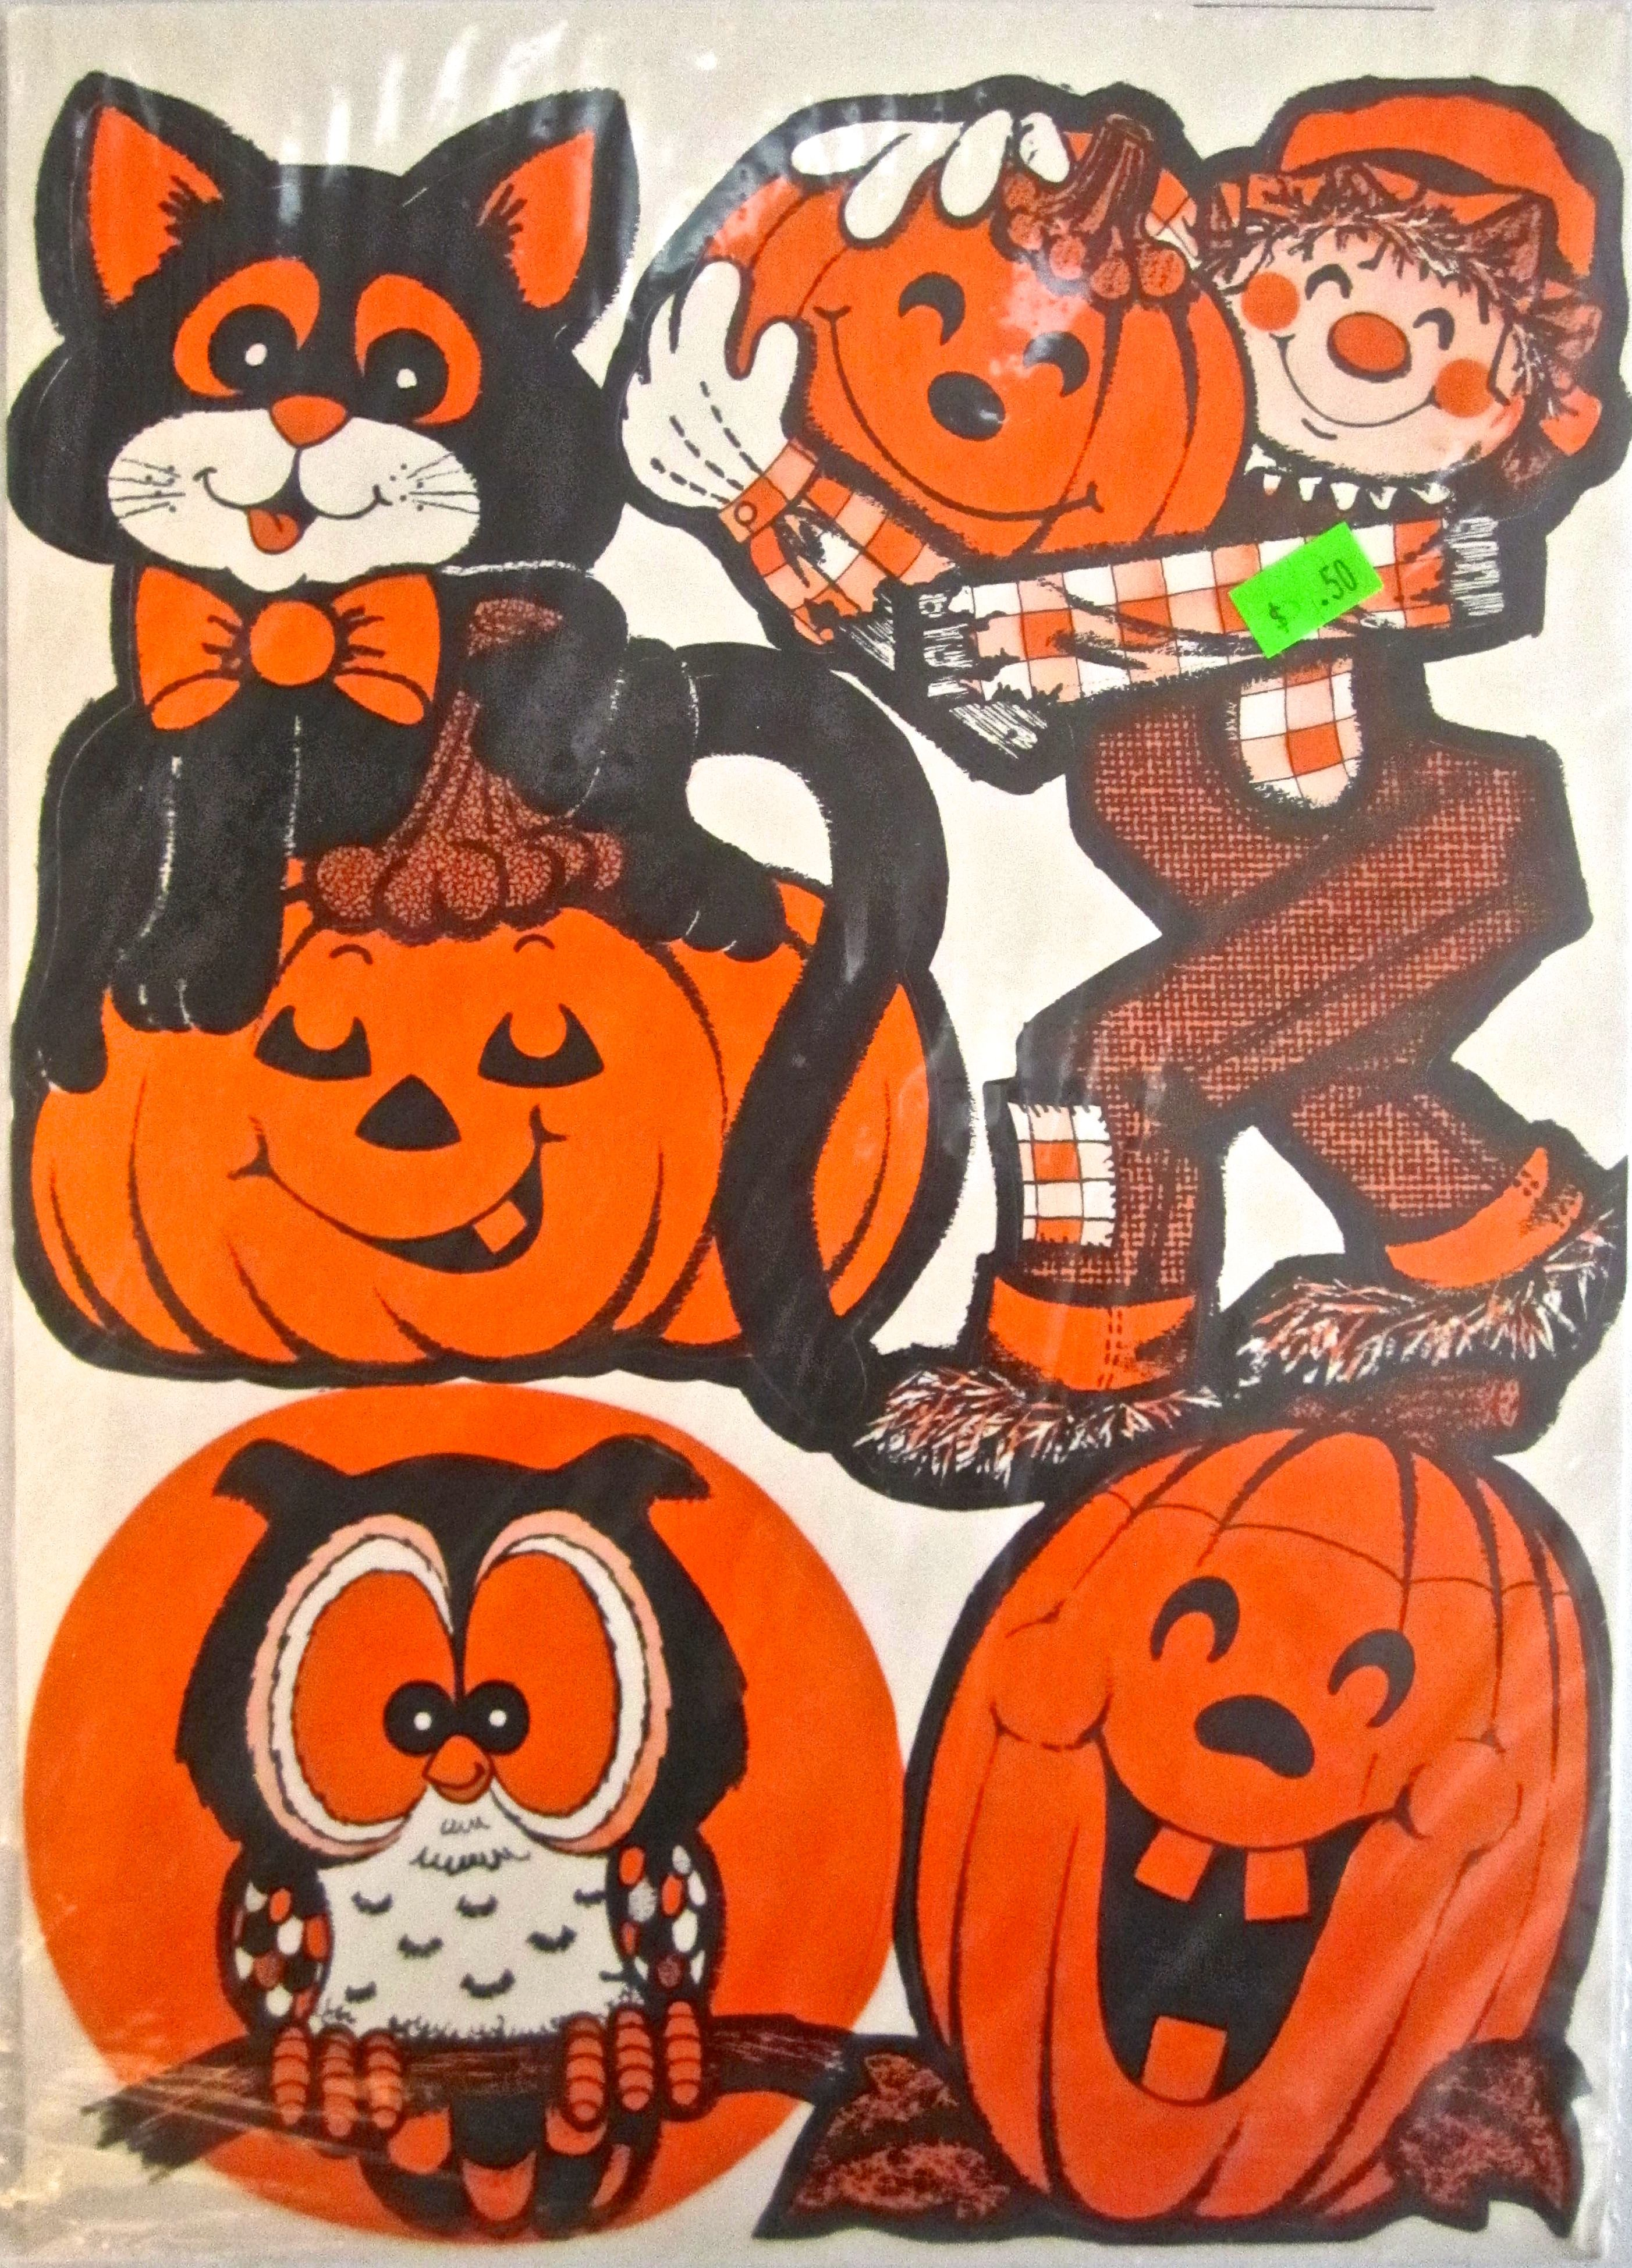 Pin by Gretchen Havens on Vintage Halloween Decorations